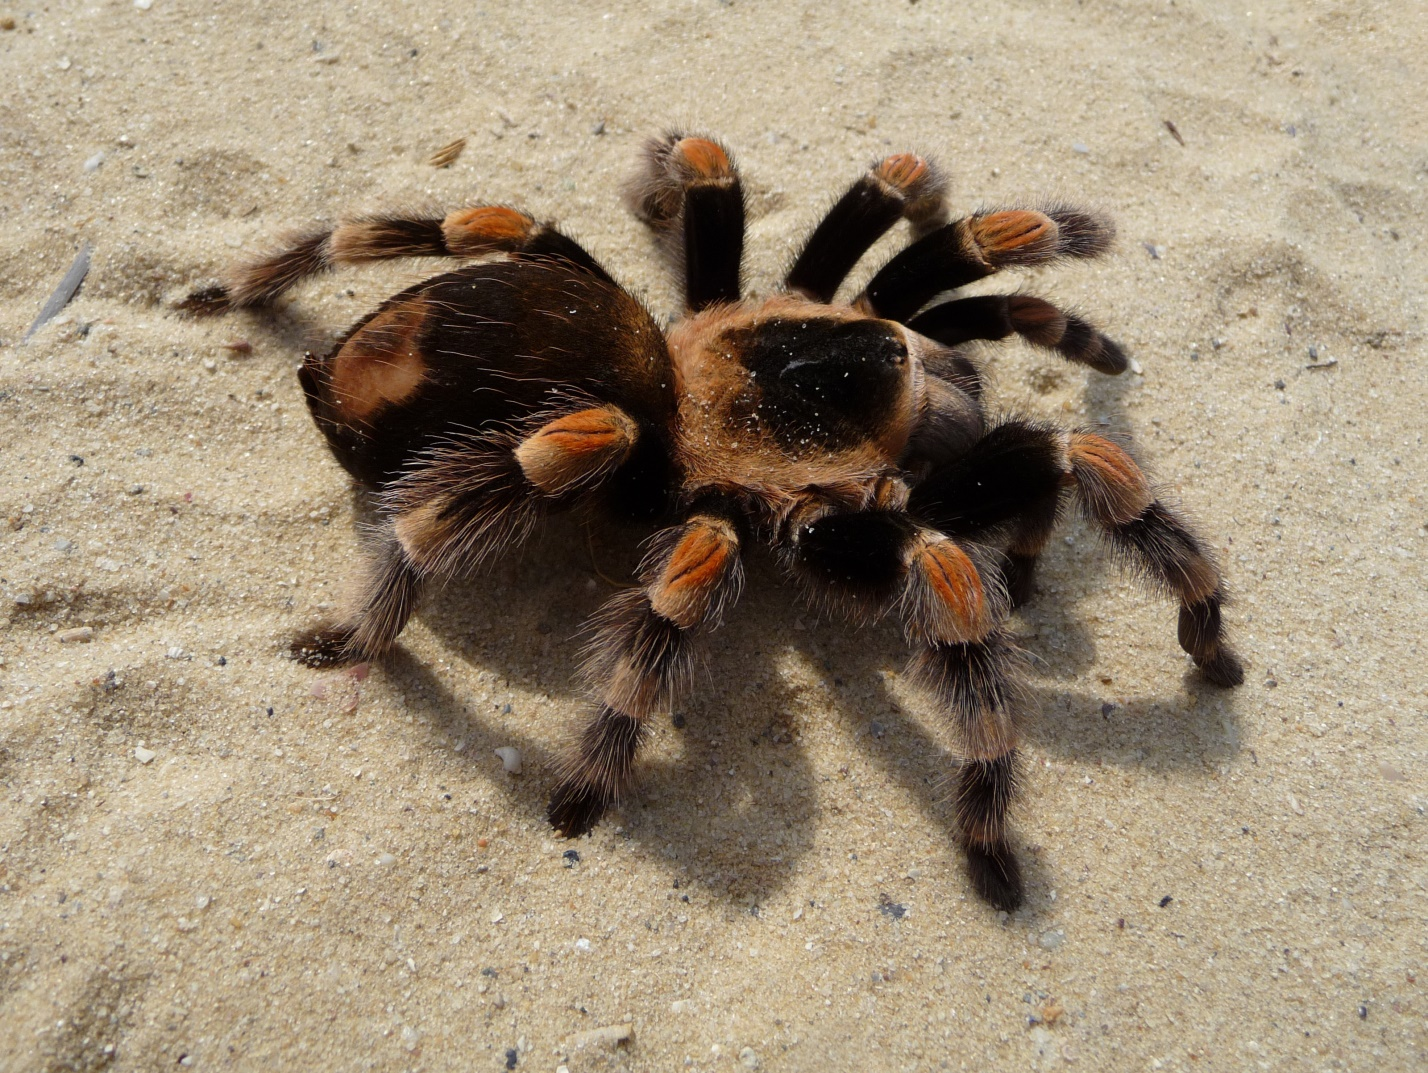 C:\Users\лд\AppData\Local\Microsoft\Windows\INetCache\Content.Word\Brachypelma_smithi_2009_G03.jpg